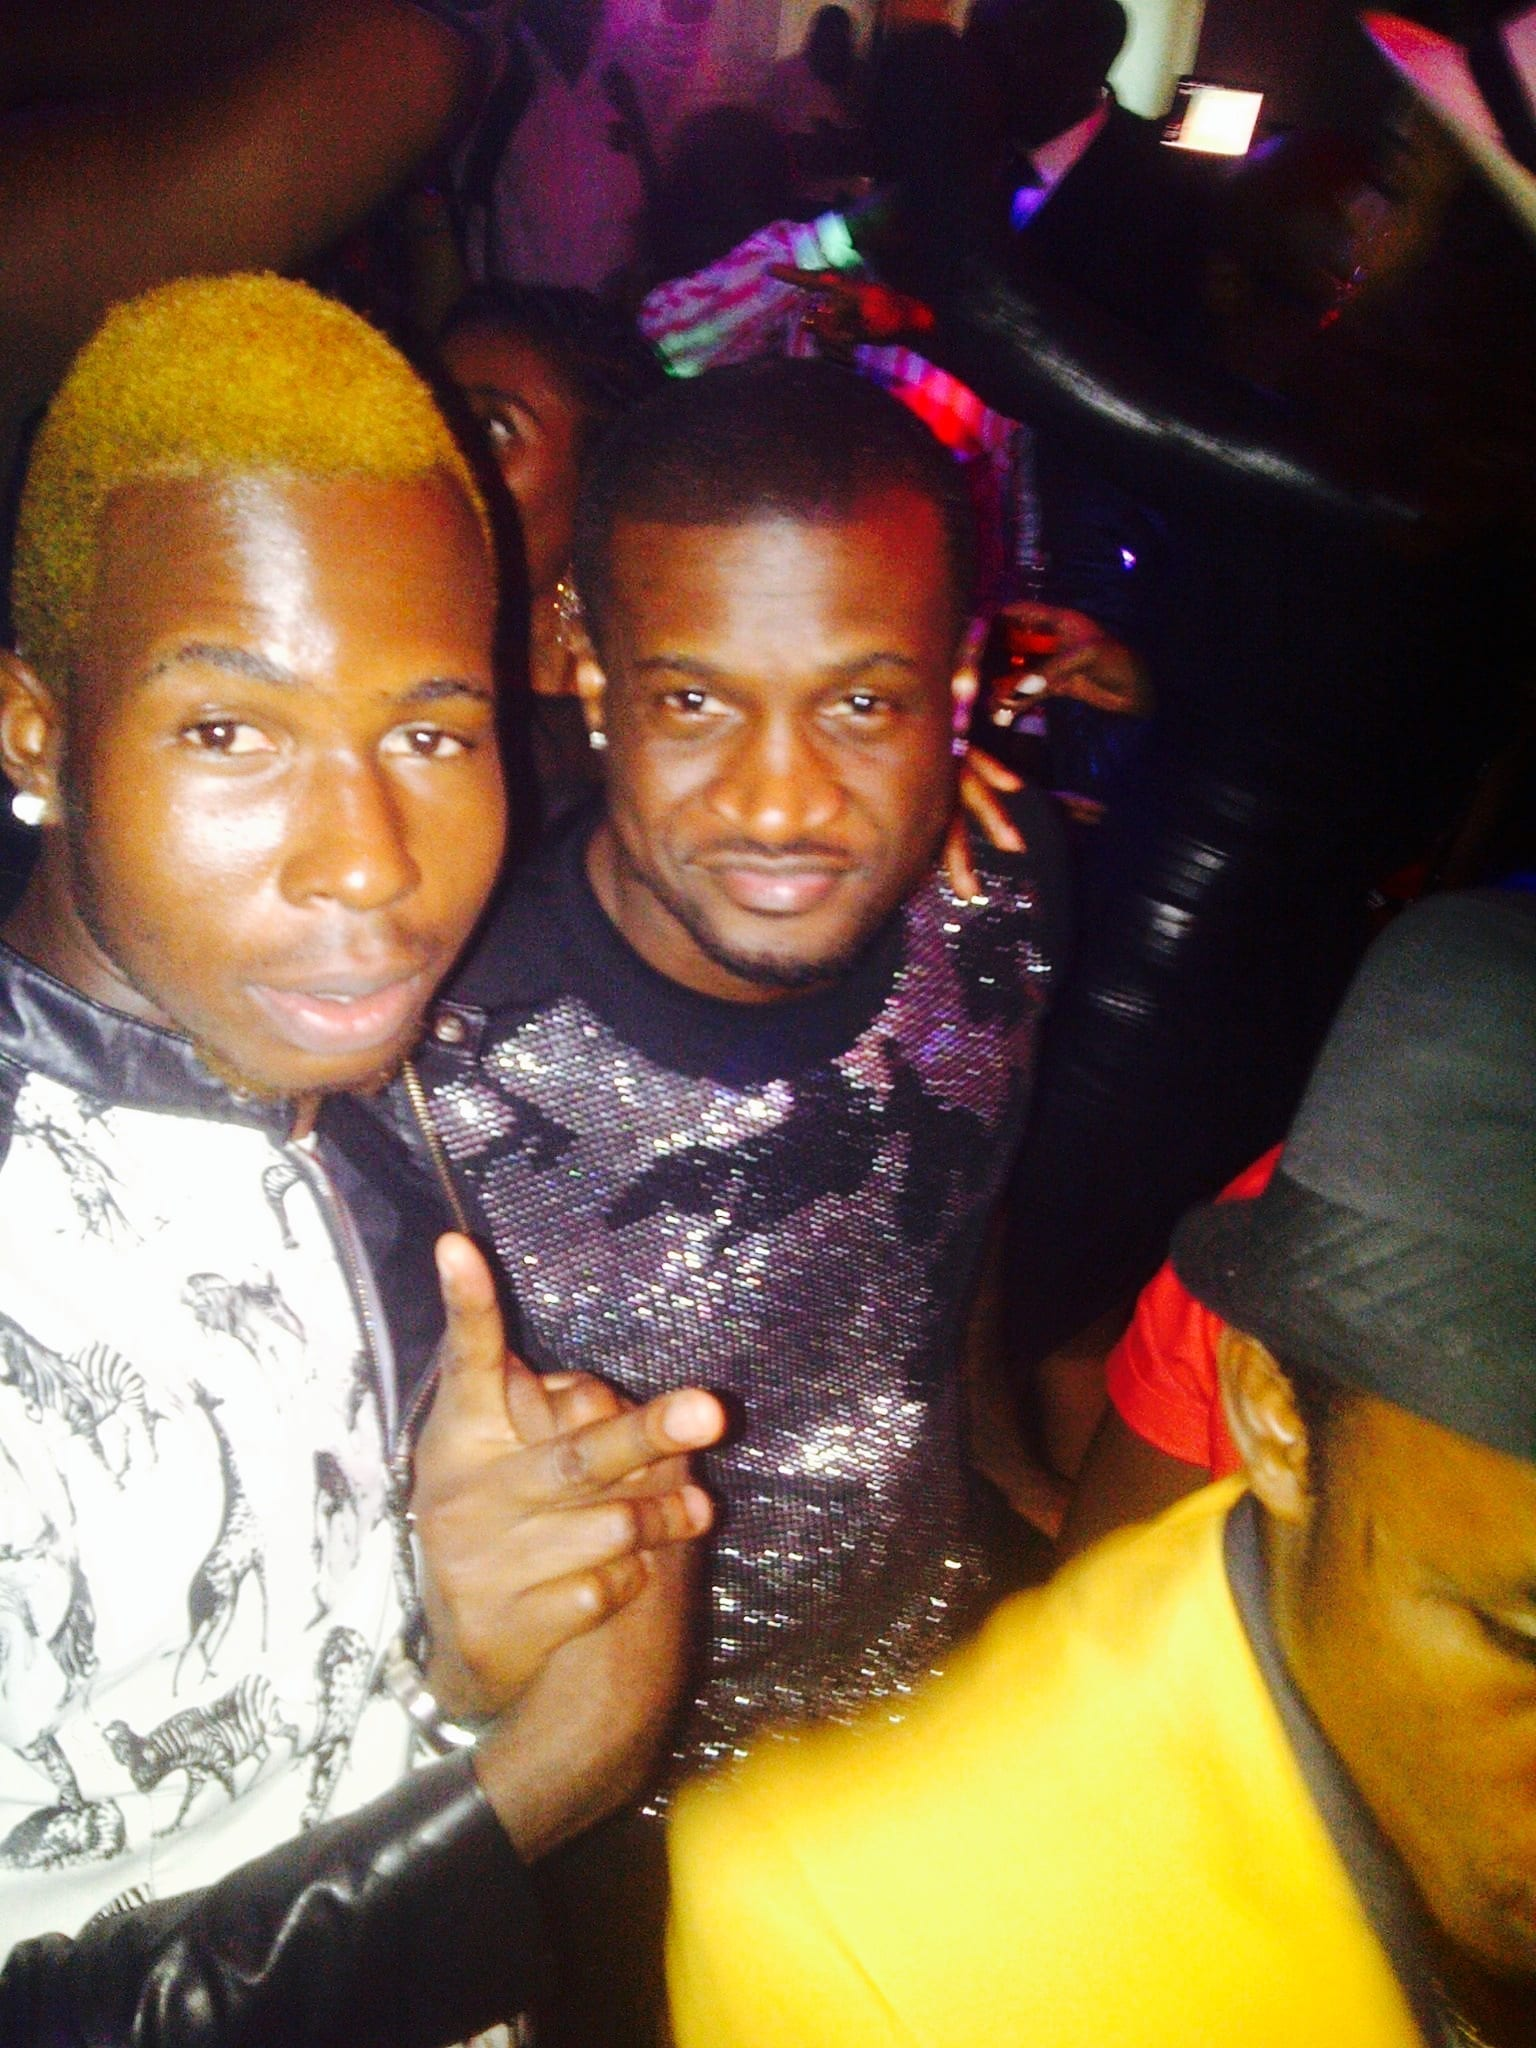 pics of dr spicy and PSquare